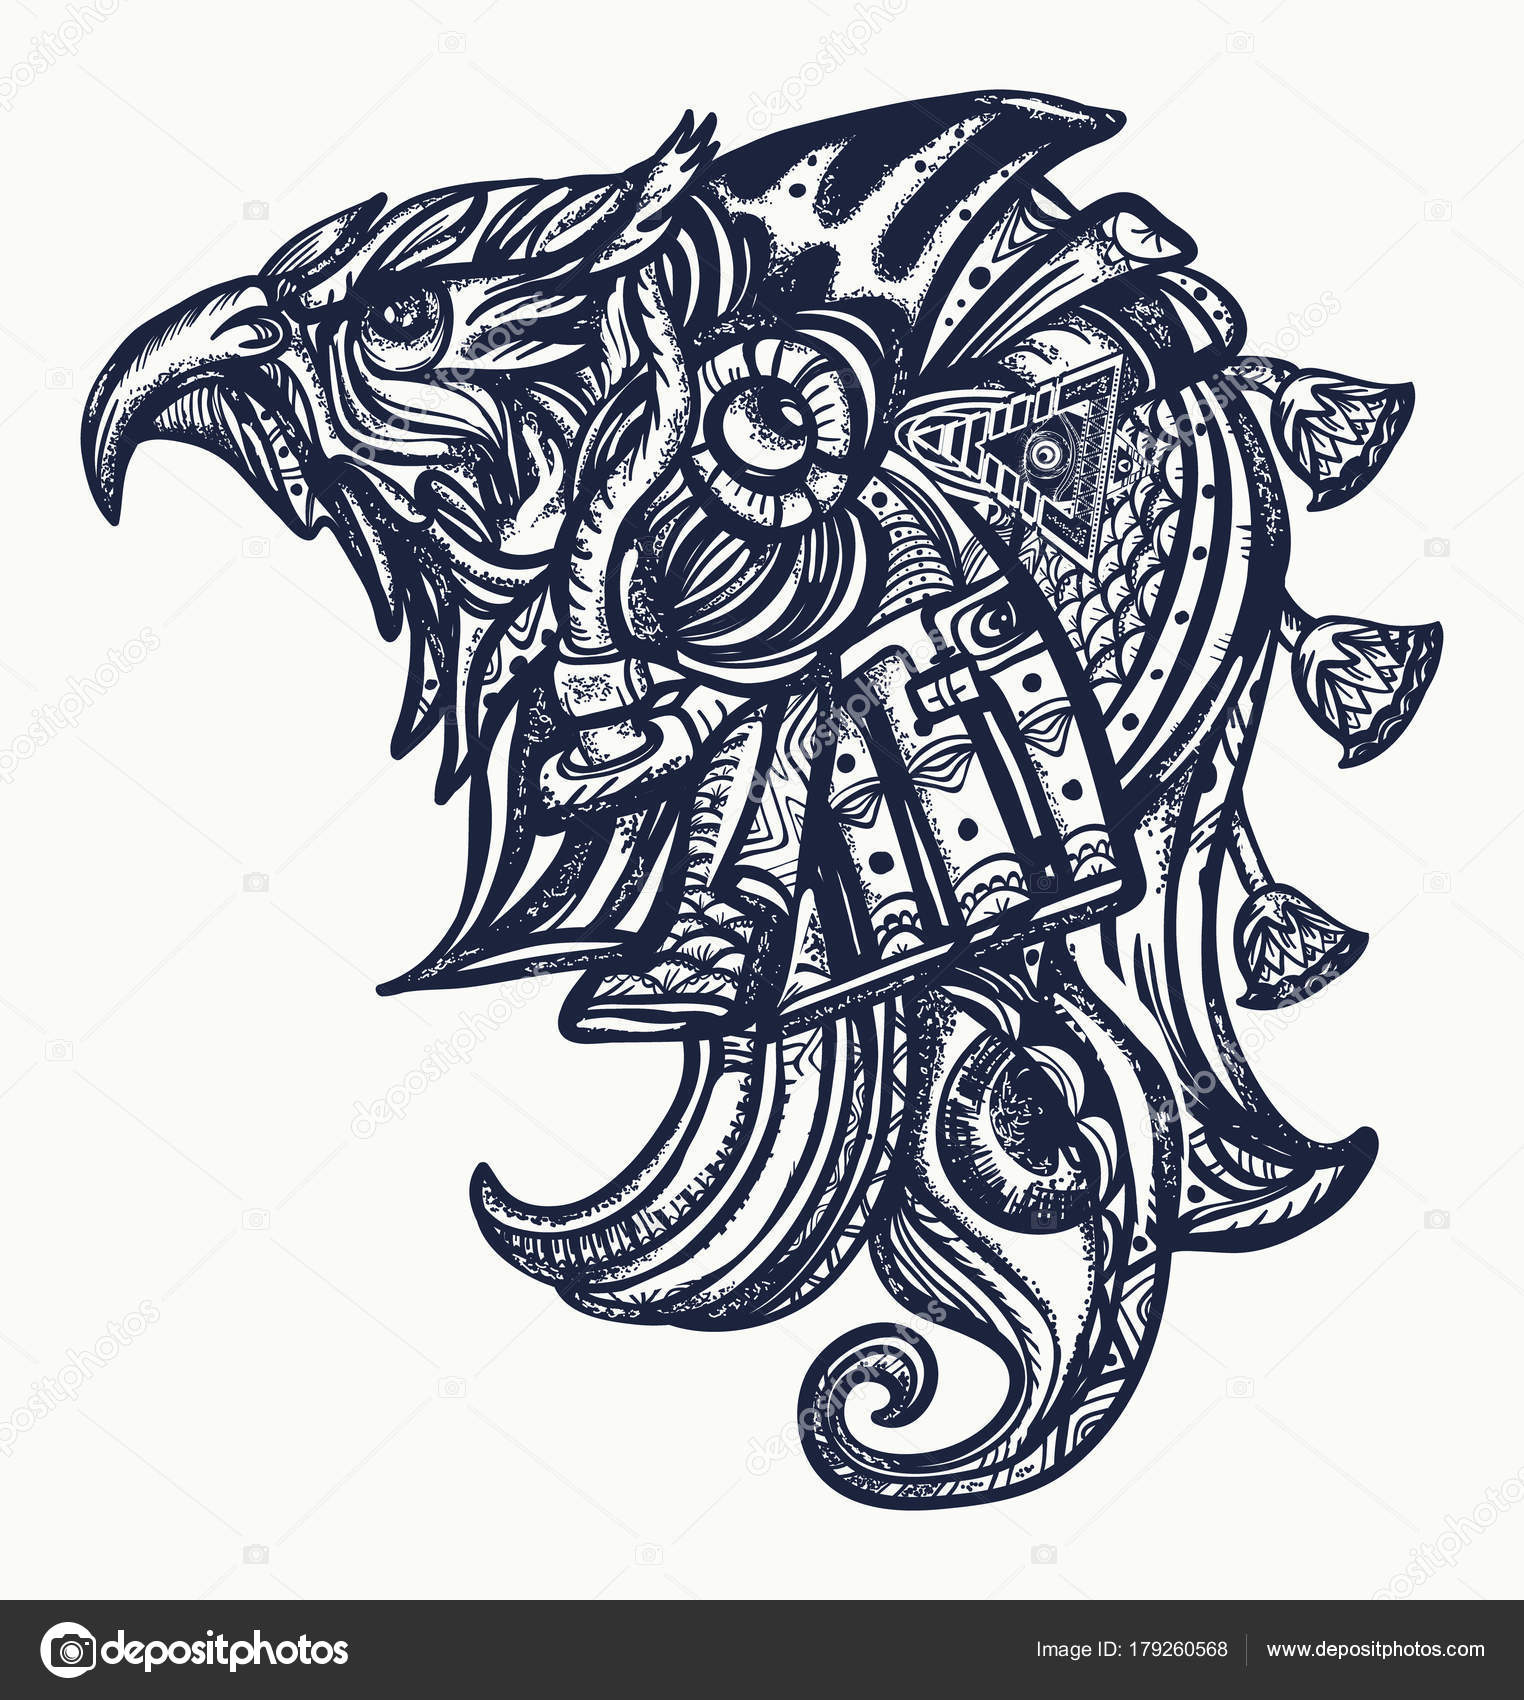 Pictures: ra tattoo | Ancient Egypt tattoo and t-shirt design.Horus gods,  eye of Ra — Stock Vector © intueri #179260568